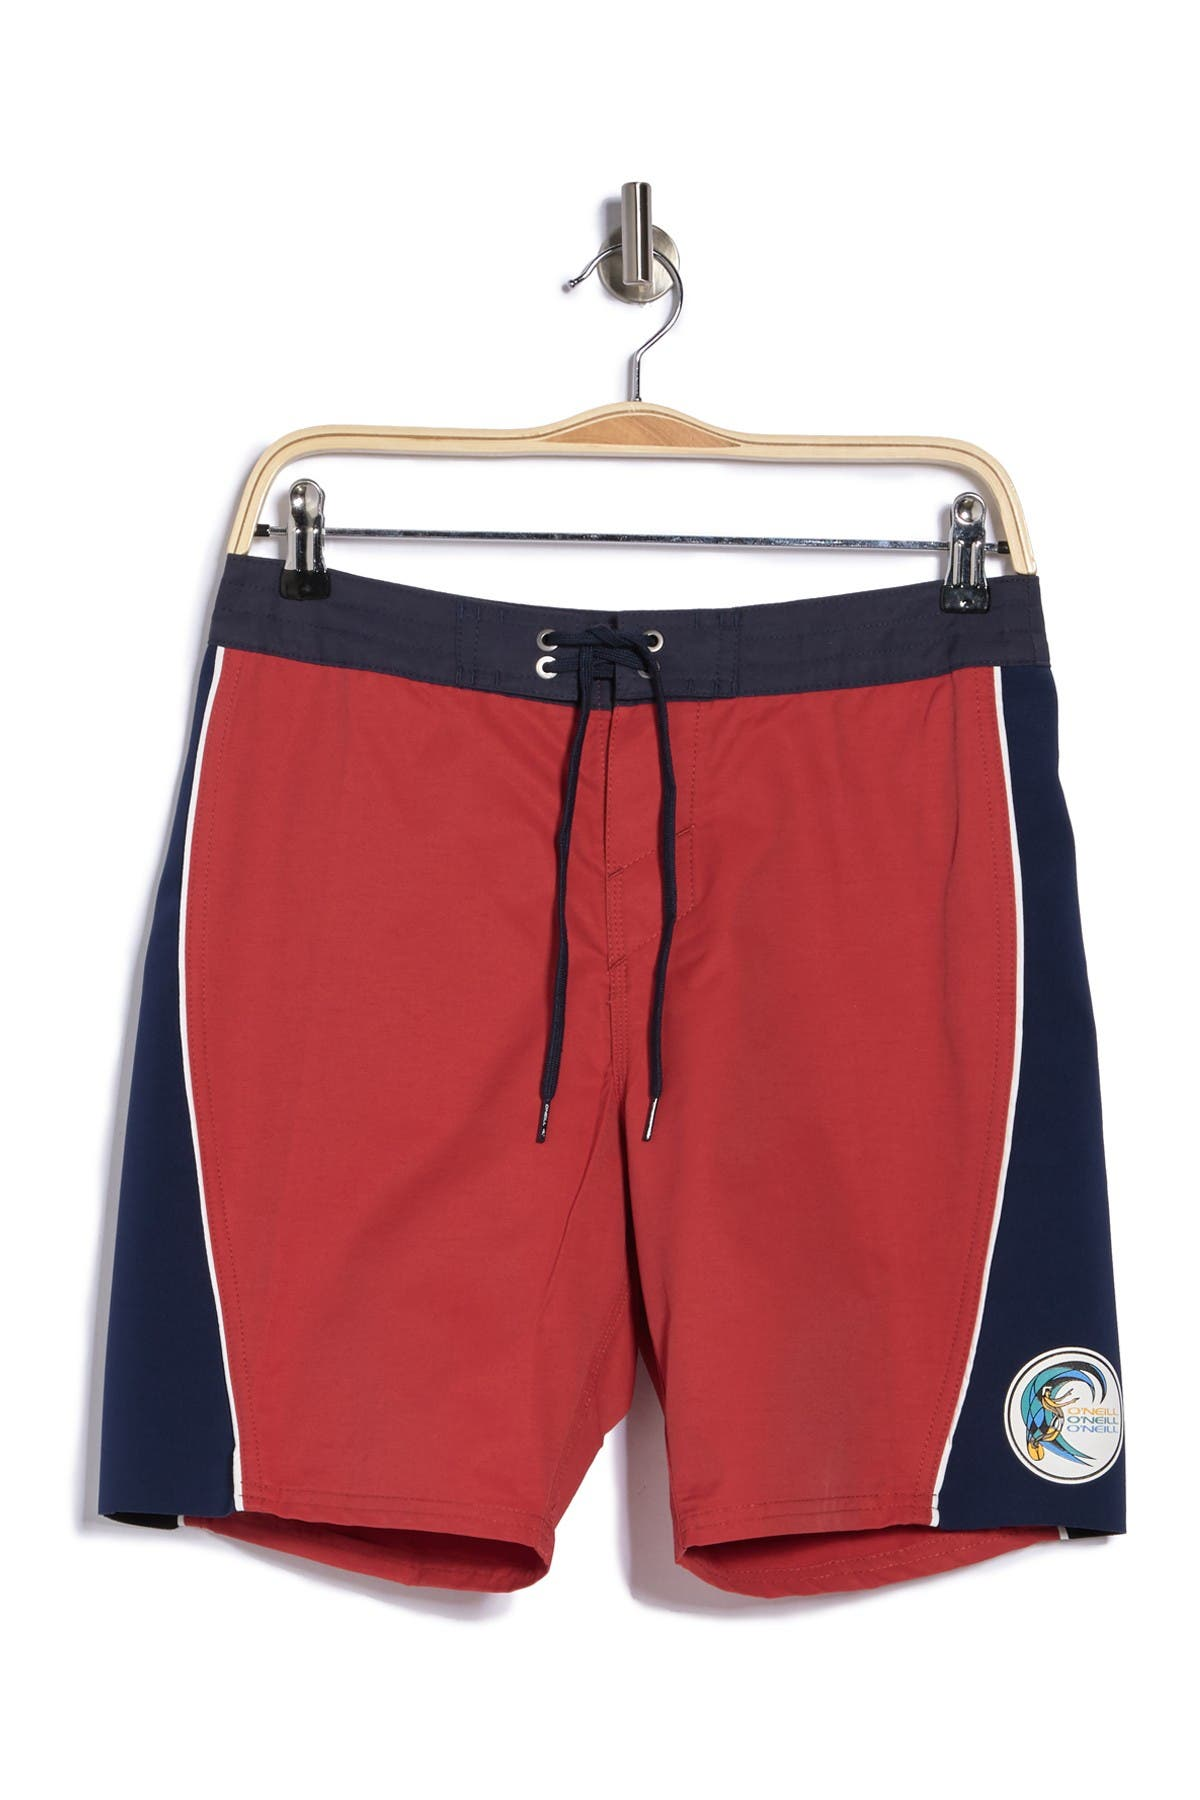 Image of O'Neill Colorblock Boardshorts